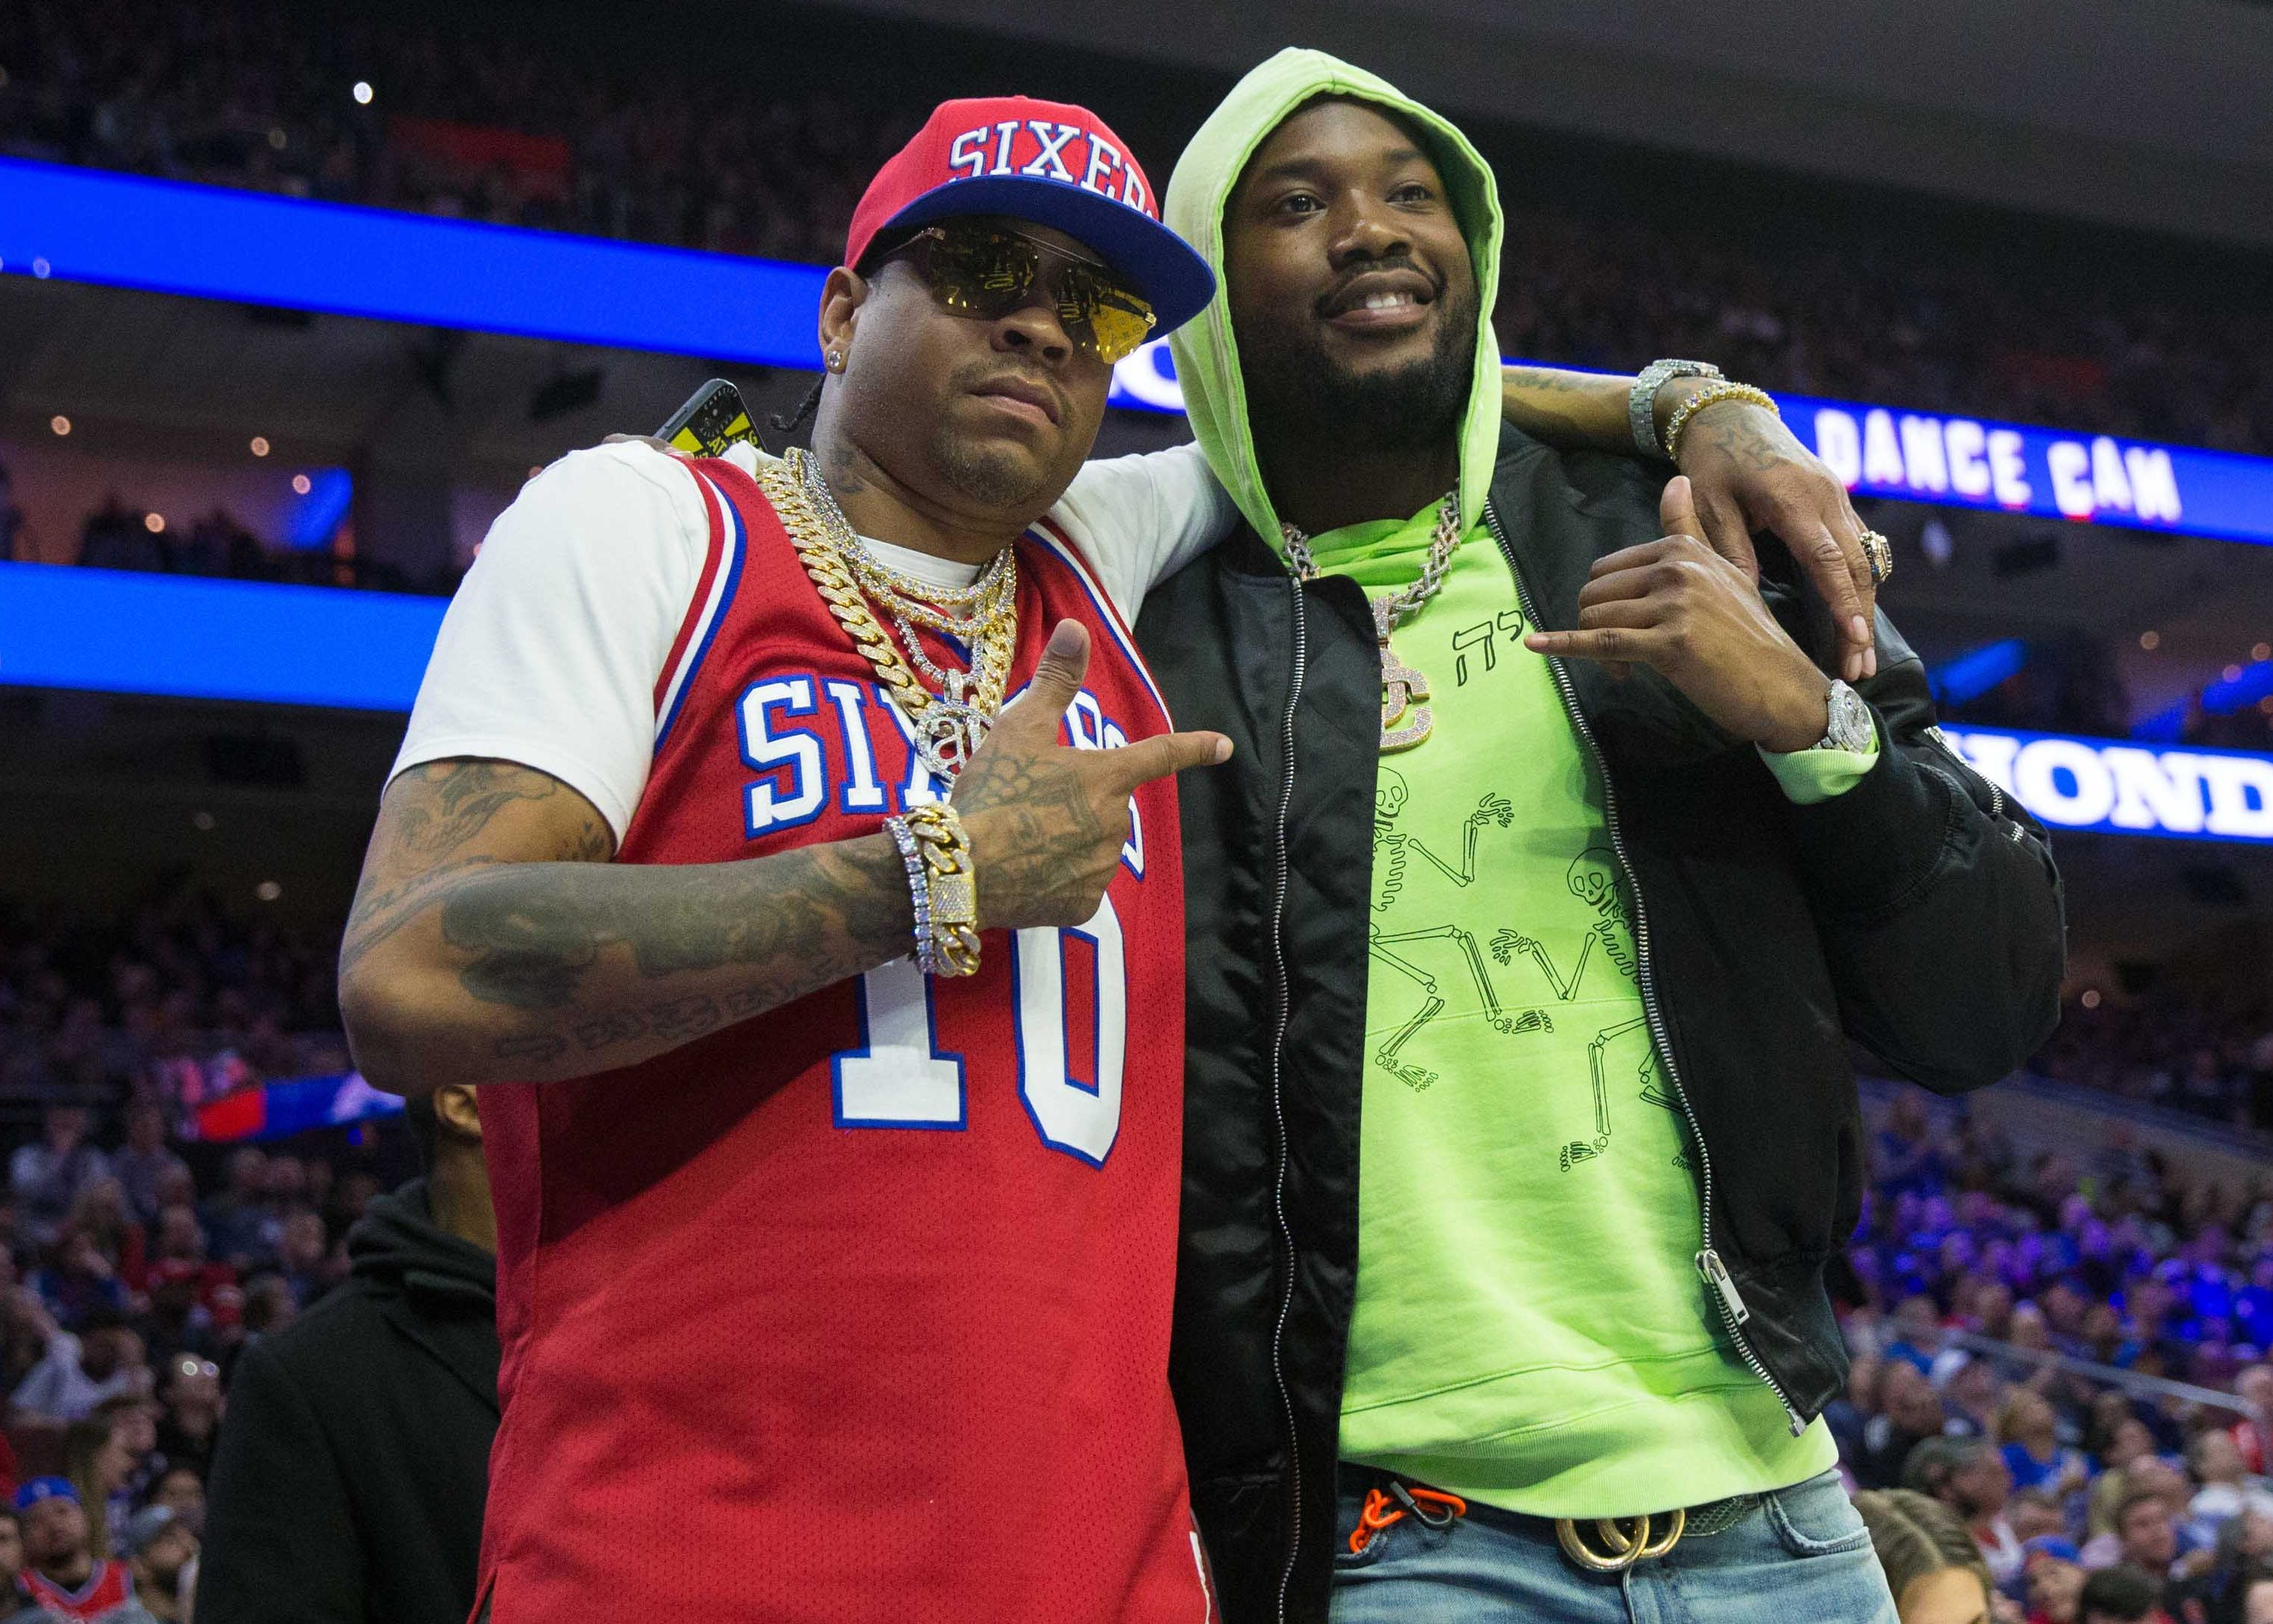 April 4: Allen Iverson, left, and Meek Mill take in the 76ers-Bucks game in Philadelphia.